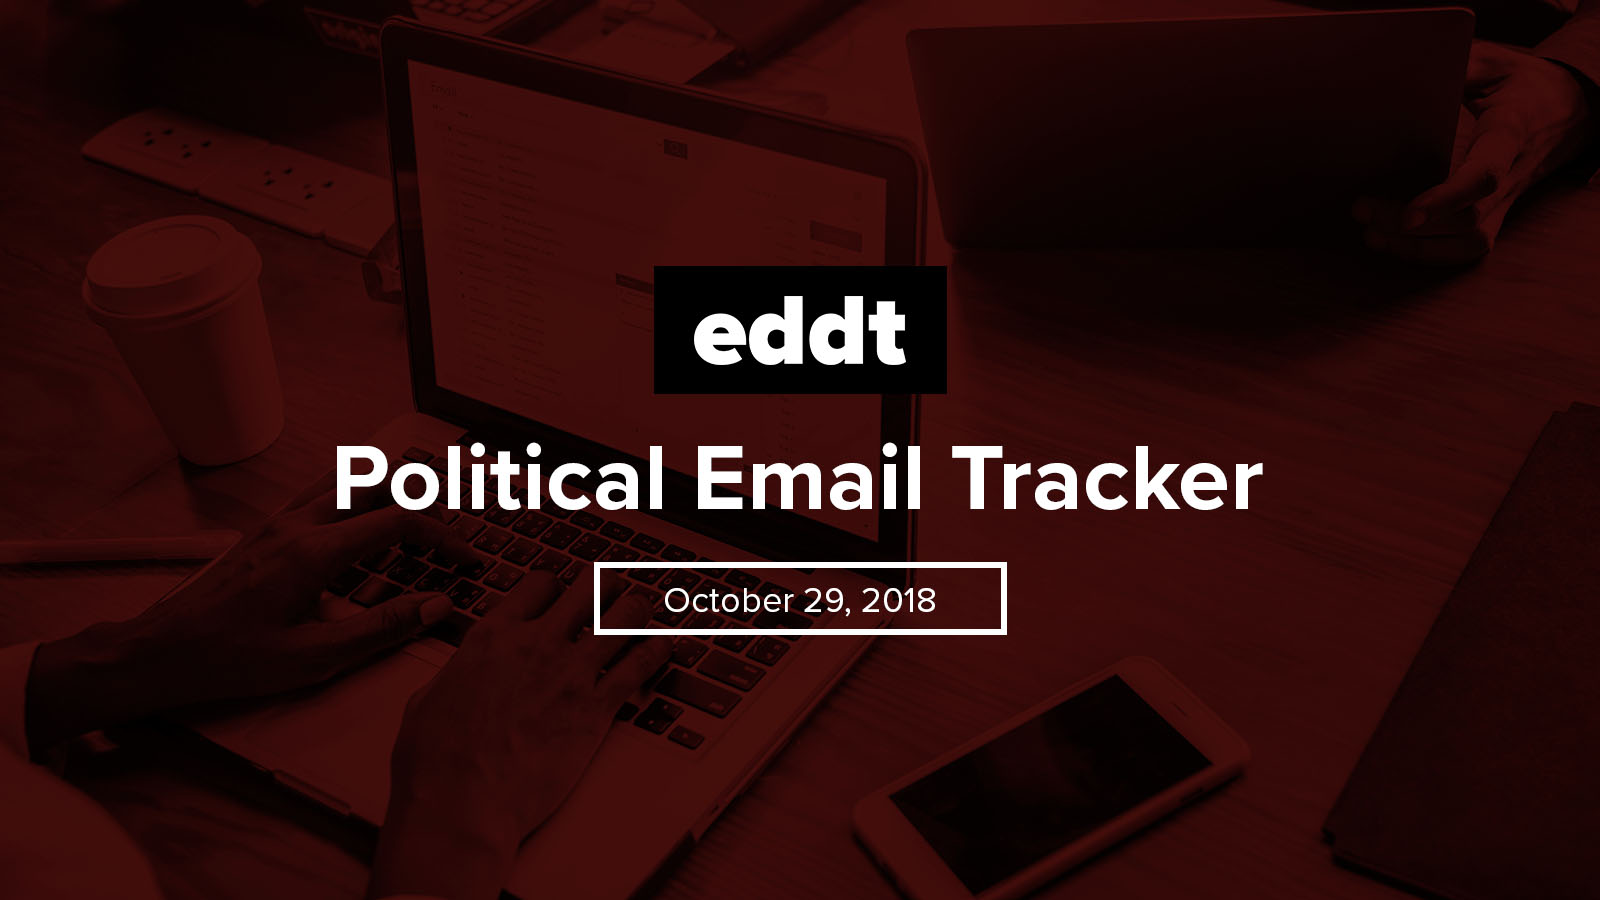 Political Email Tracker - October 29, 2018